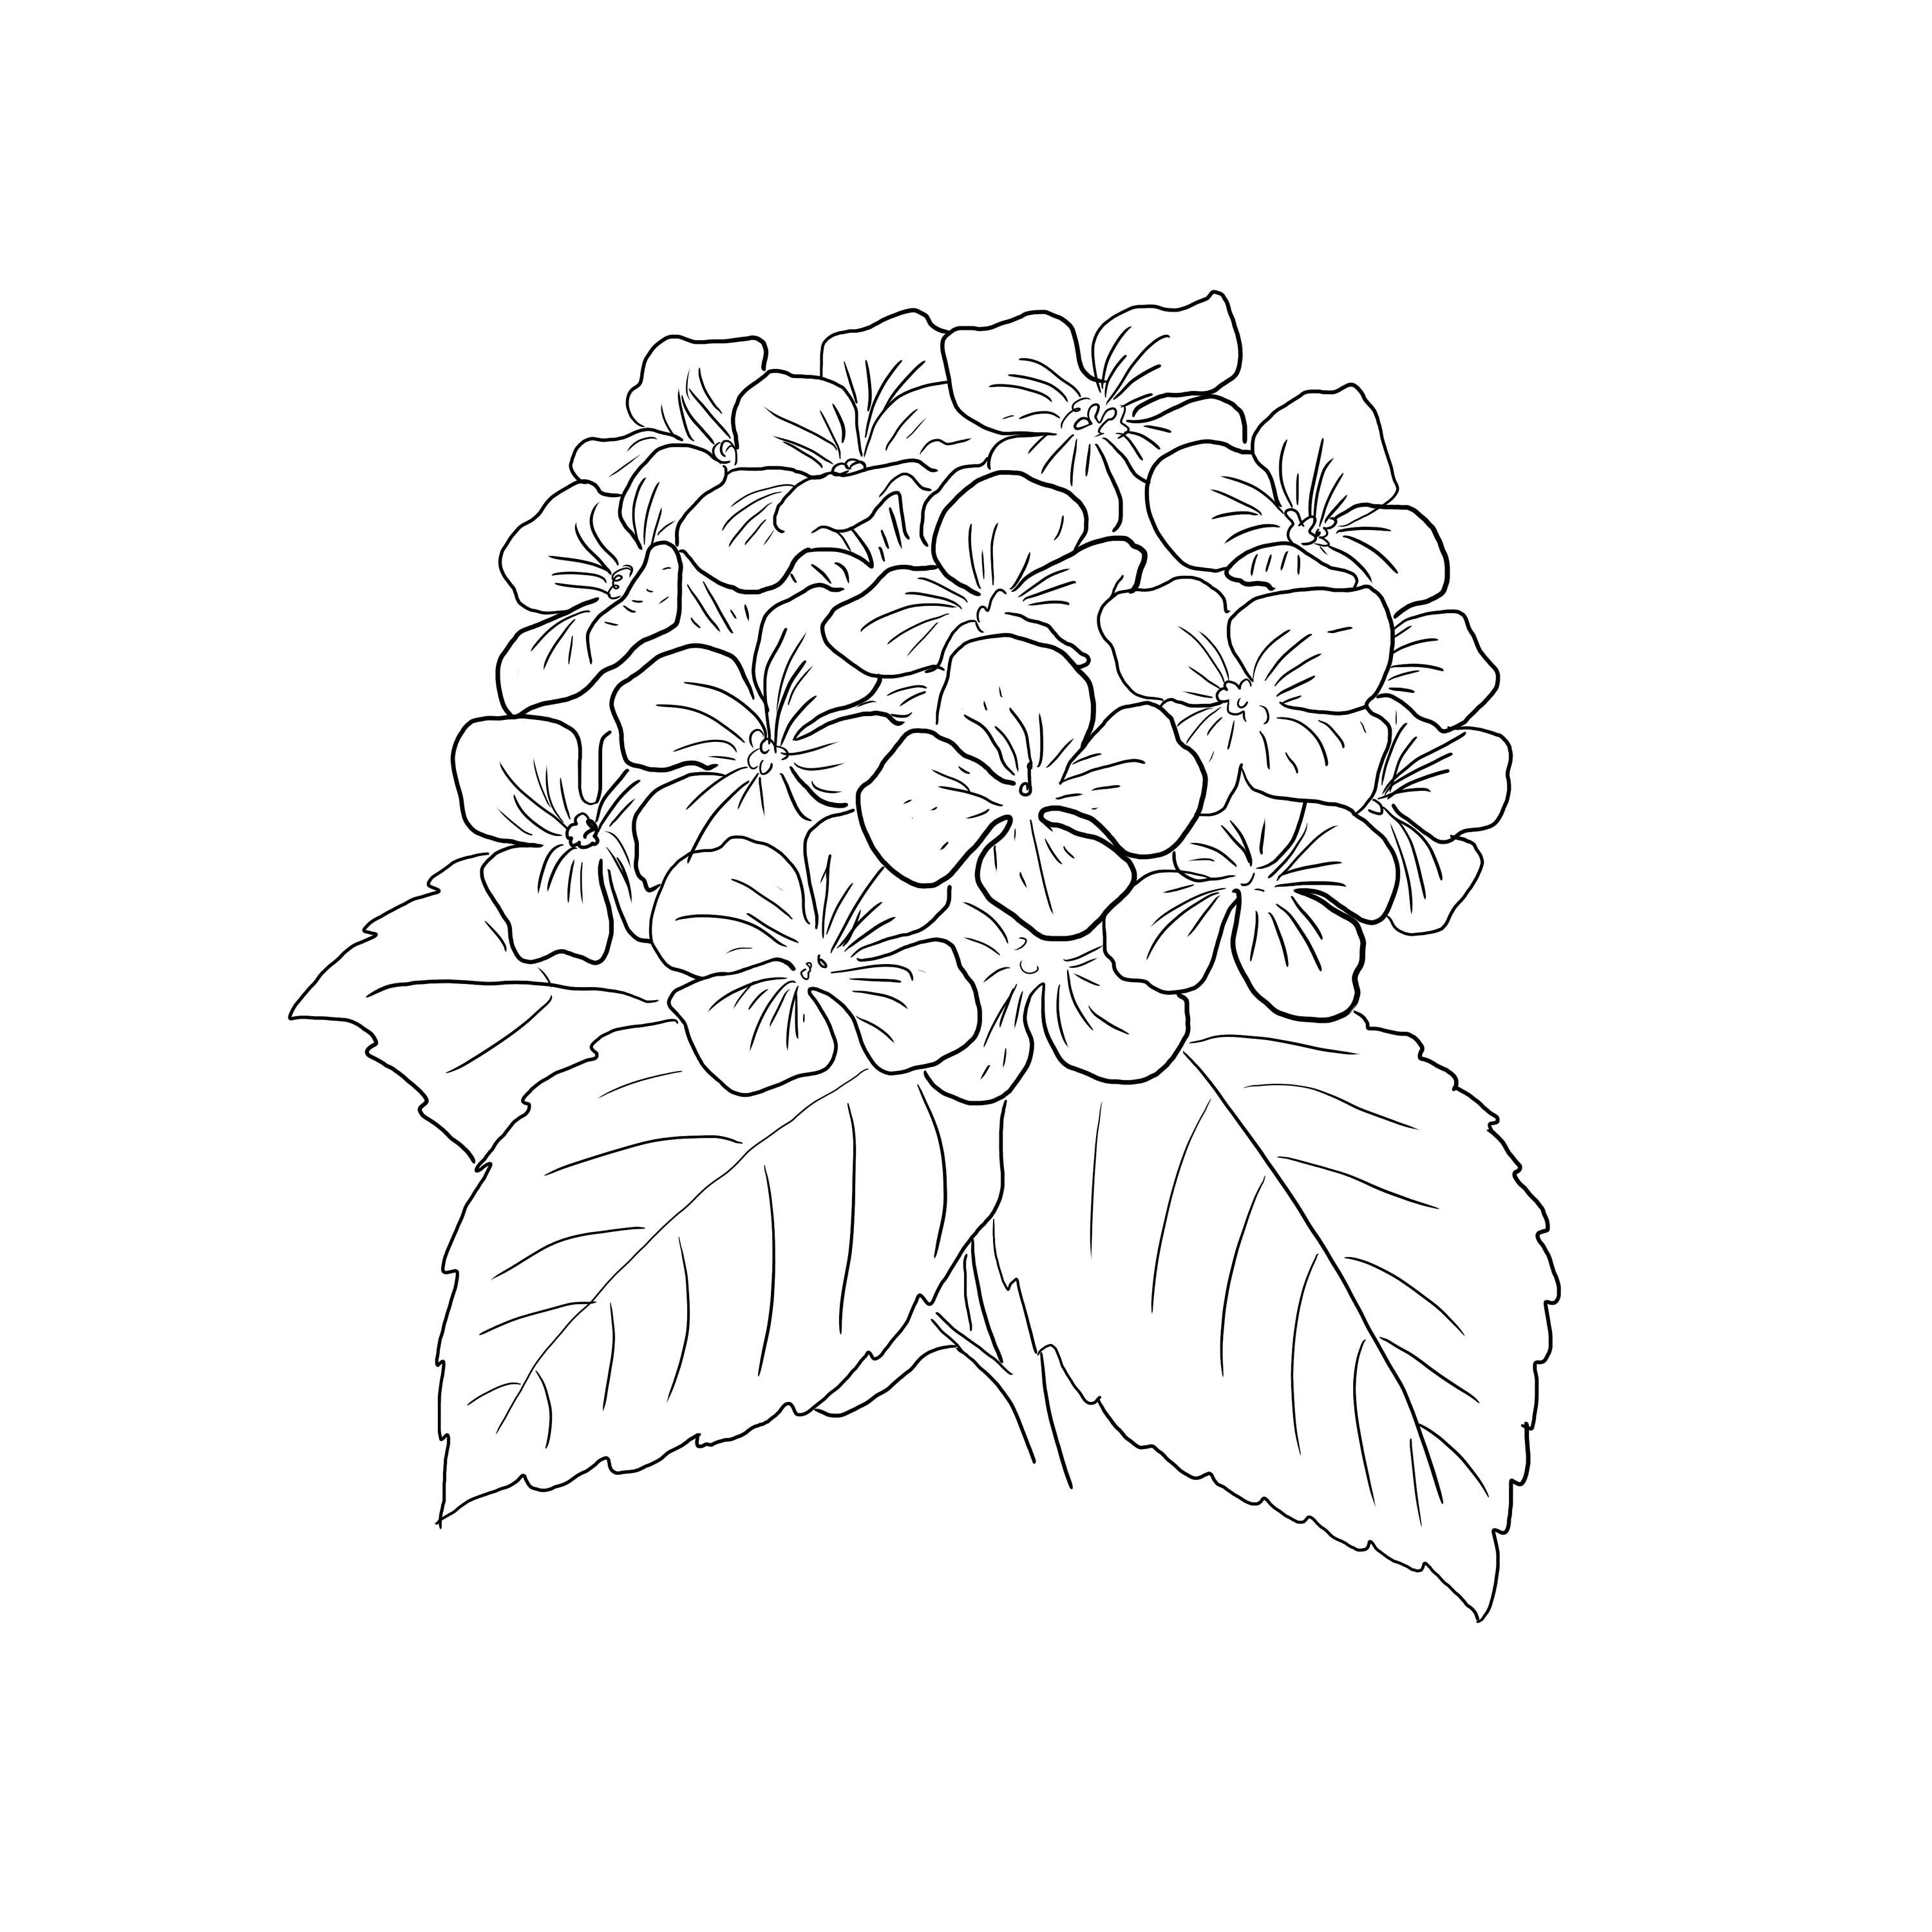 Simple Hydrangea Print For Simple And Easy Wall Art Hydrangea Print Simple Hydrangeas Hydrangea Tattoo